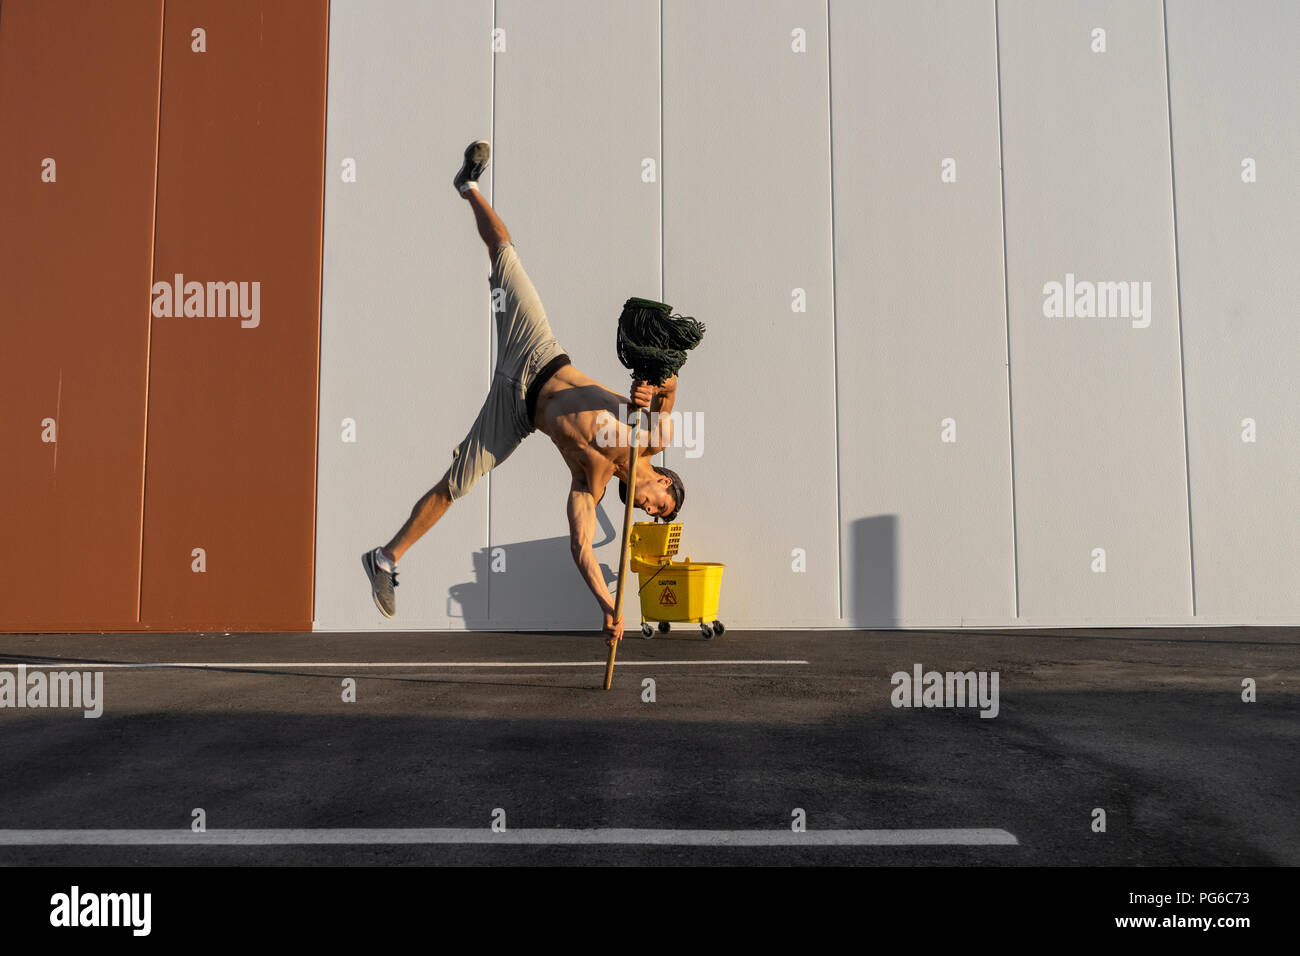 Acrobat playing with cleaning bucket and mop - Stock Image